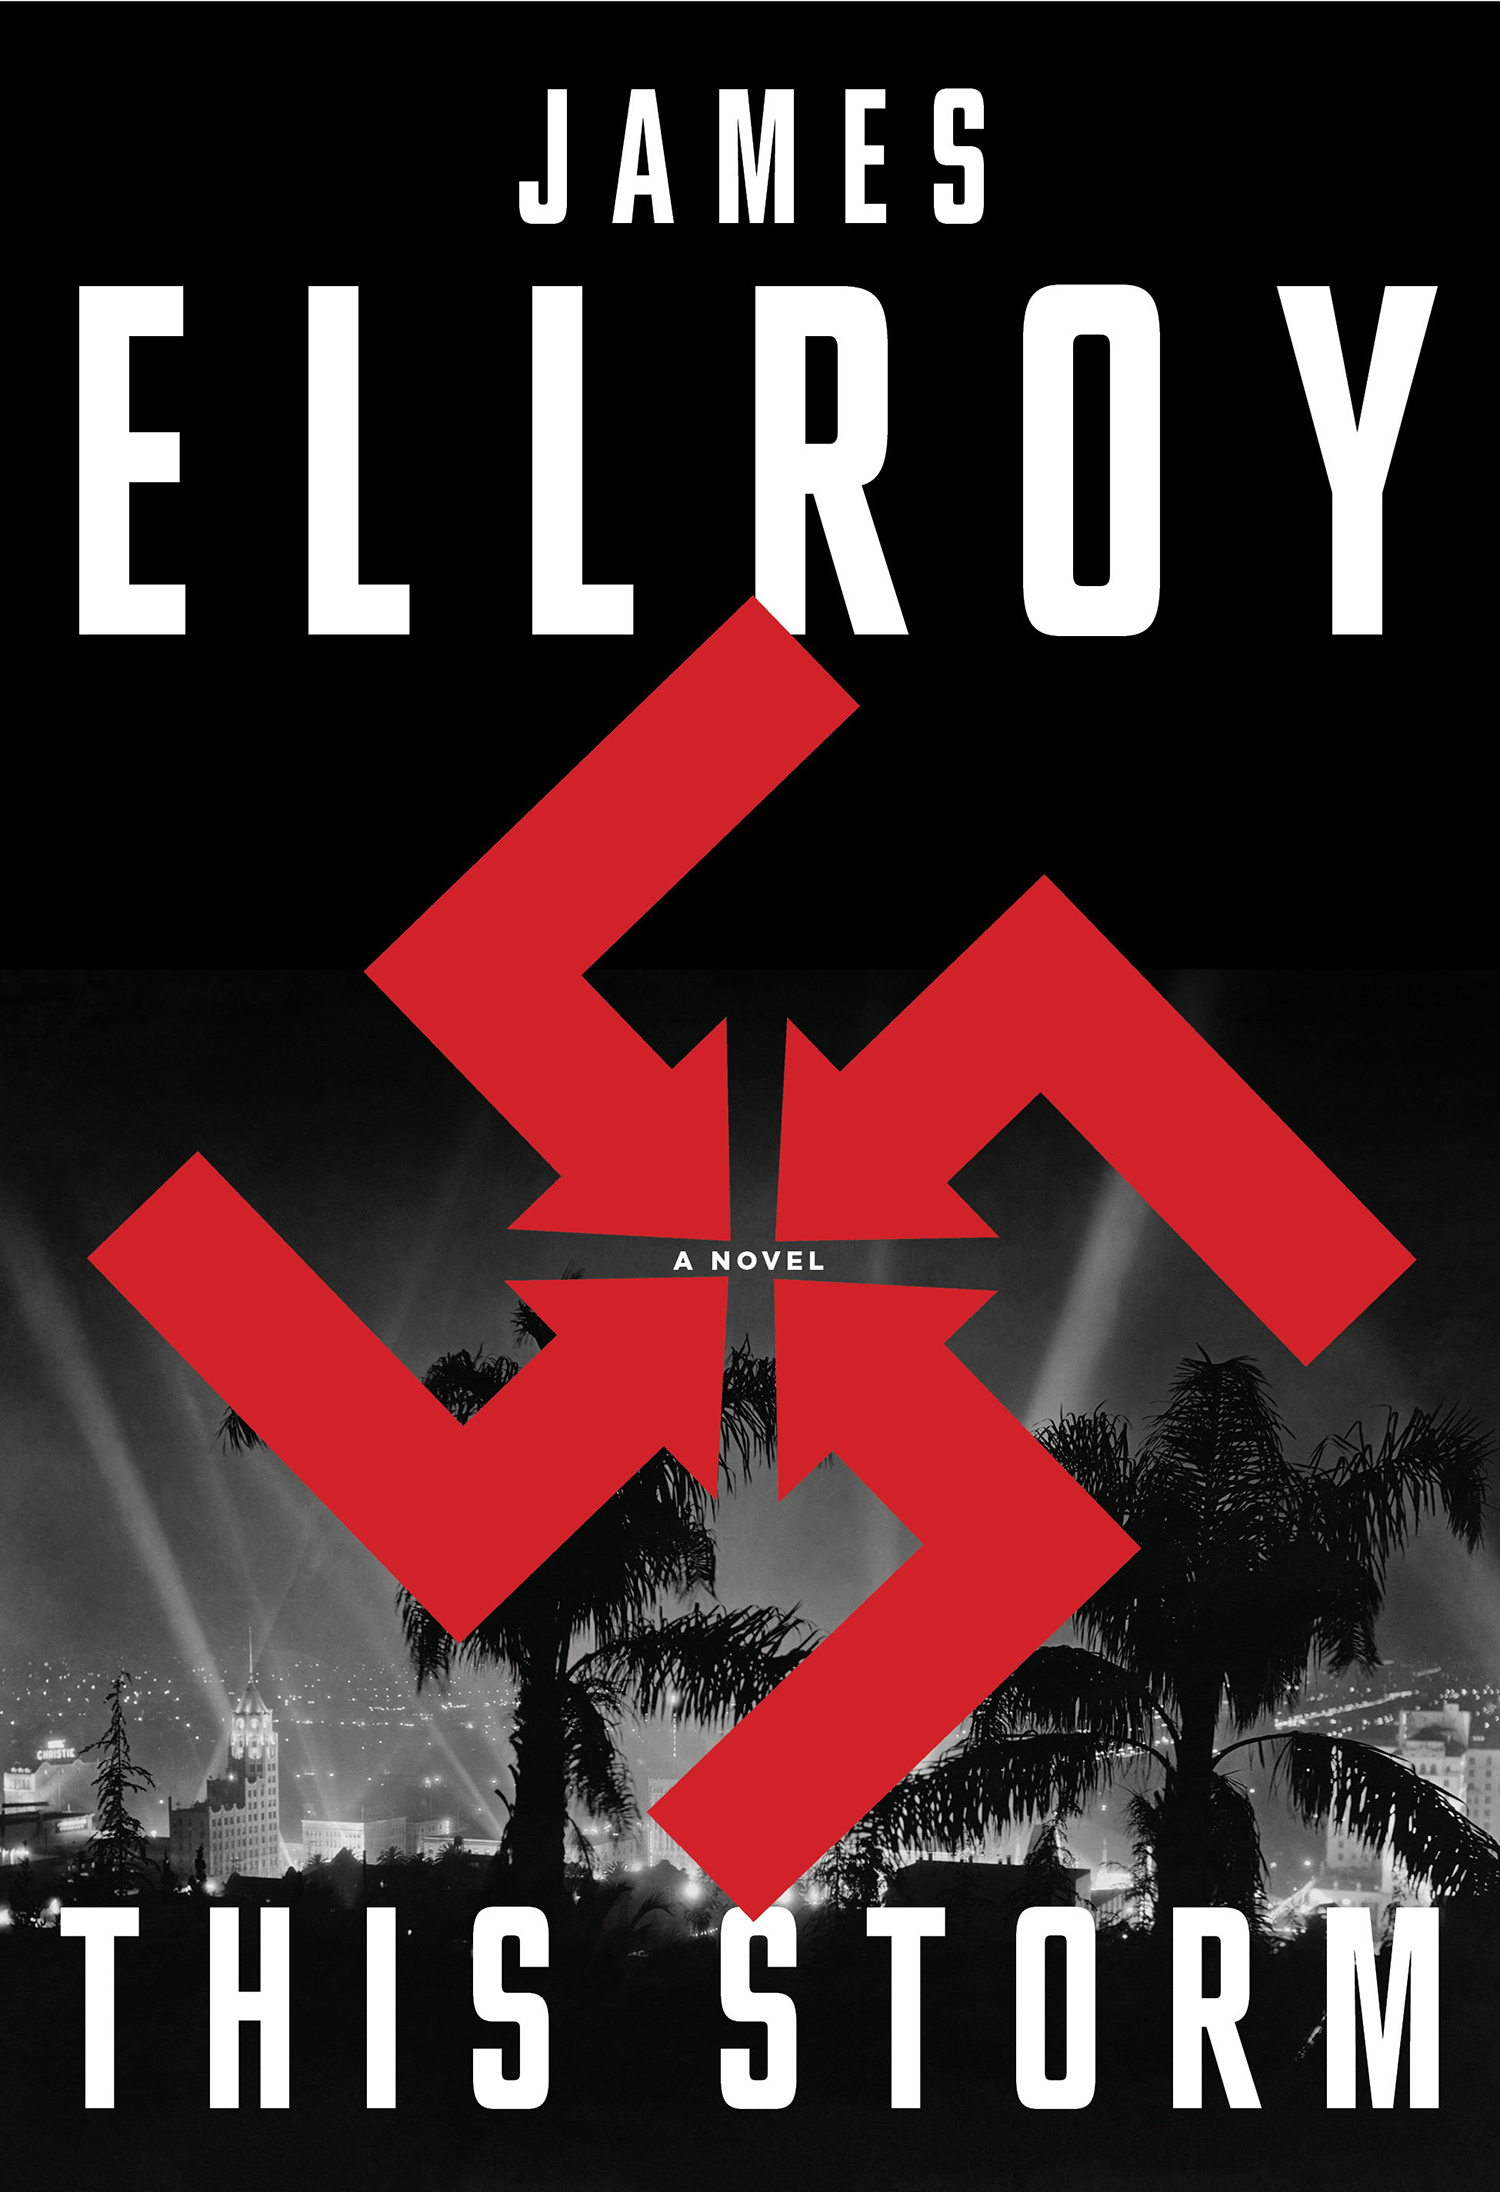 James Ellroy continues his examination of the corrupt and powerful